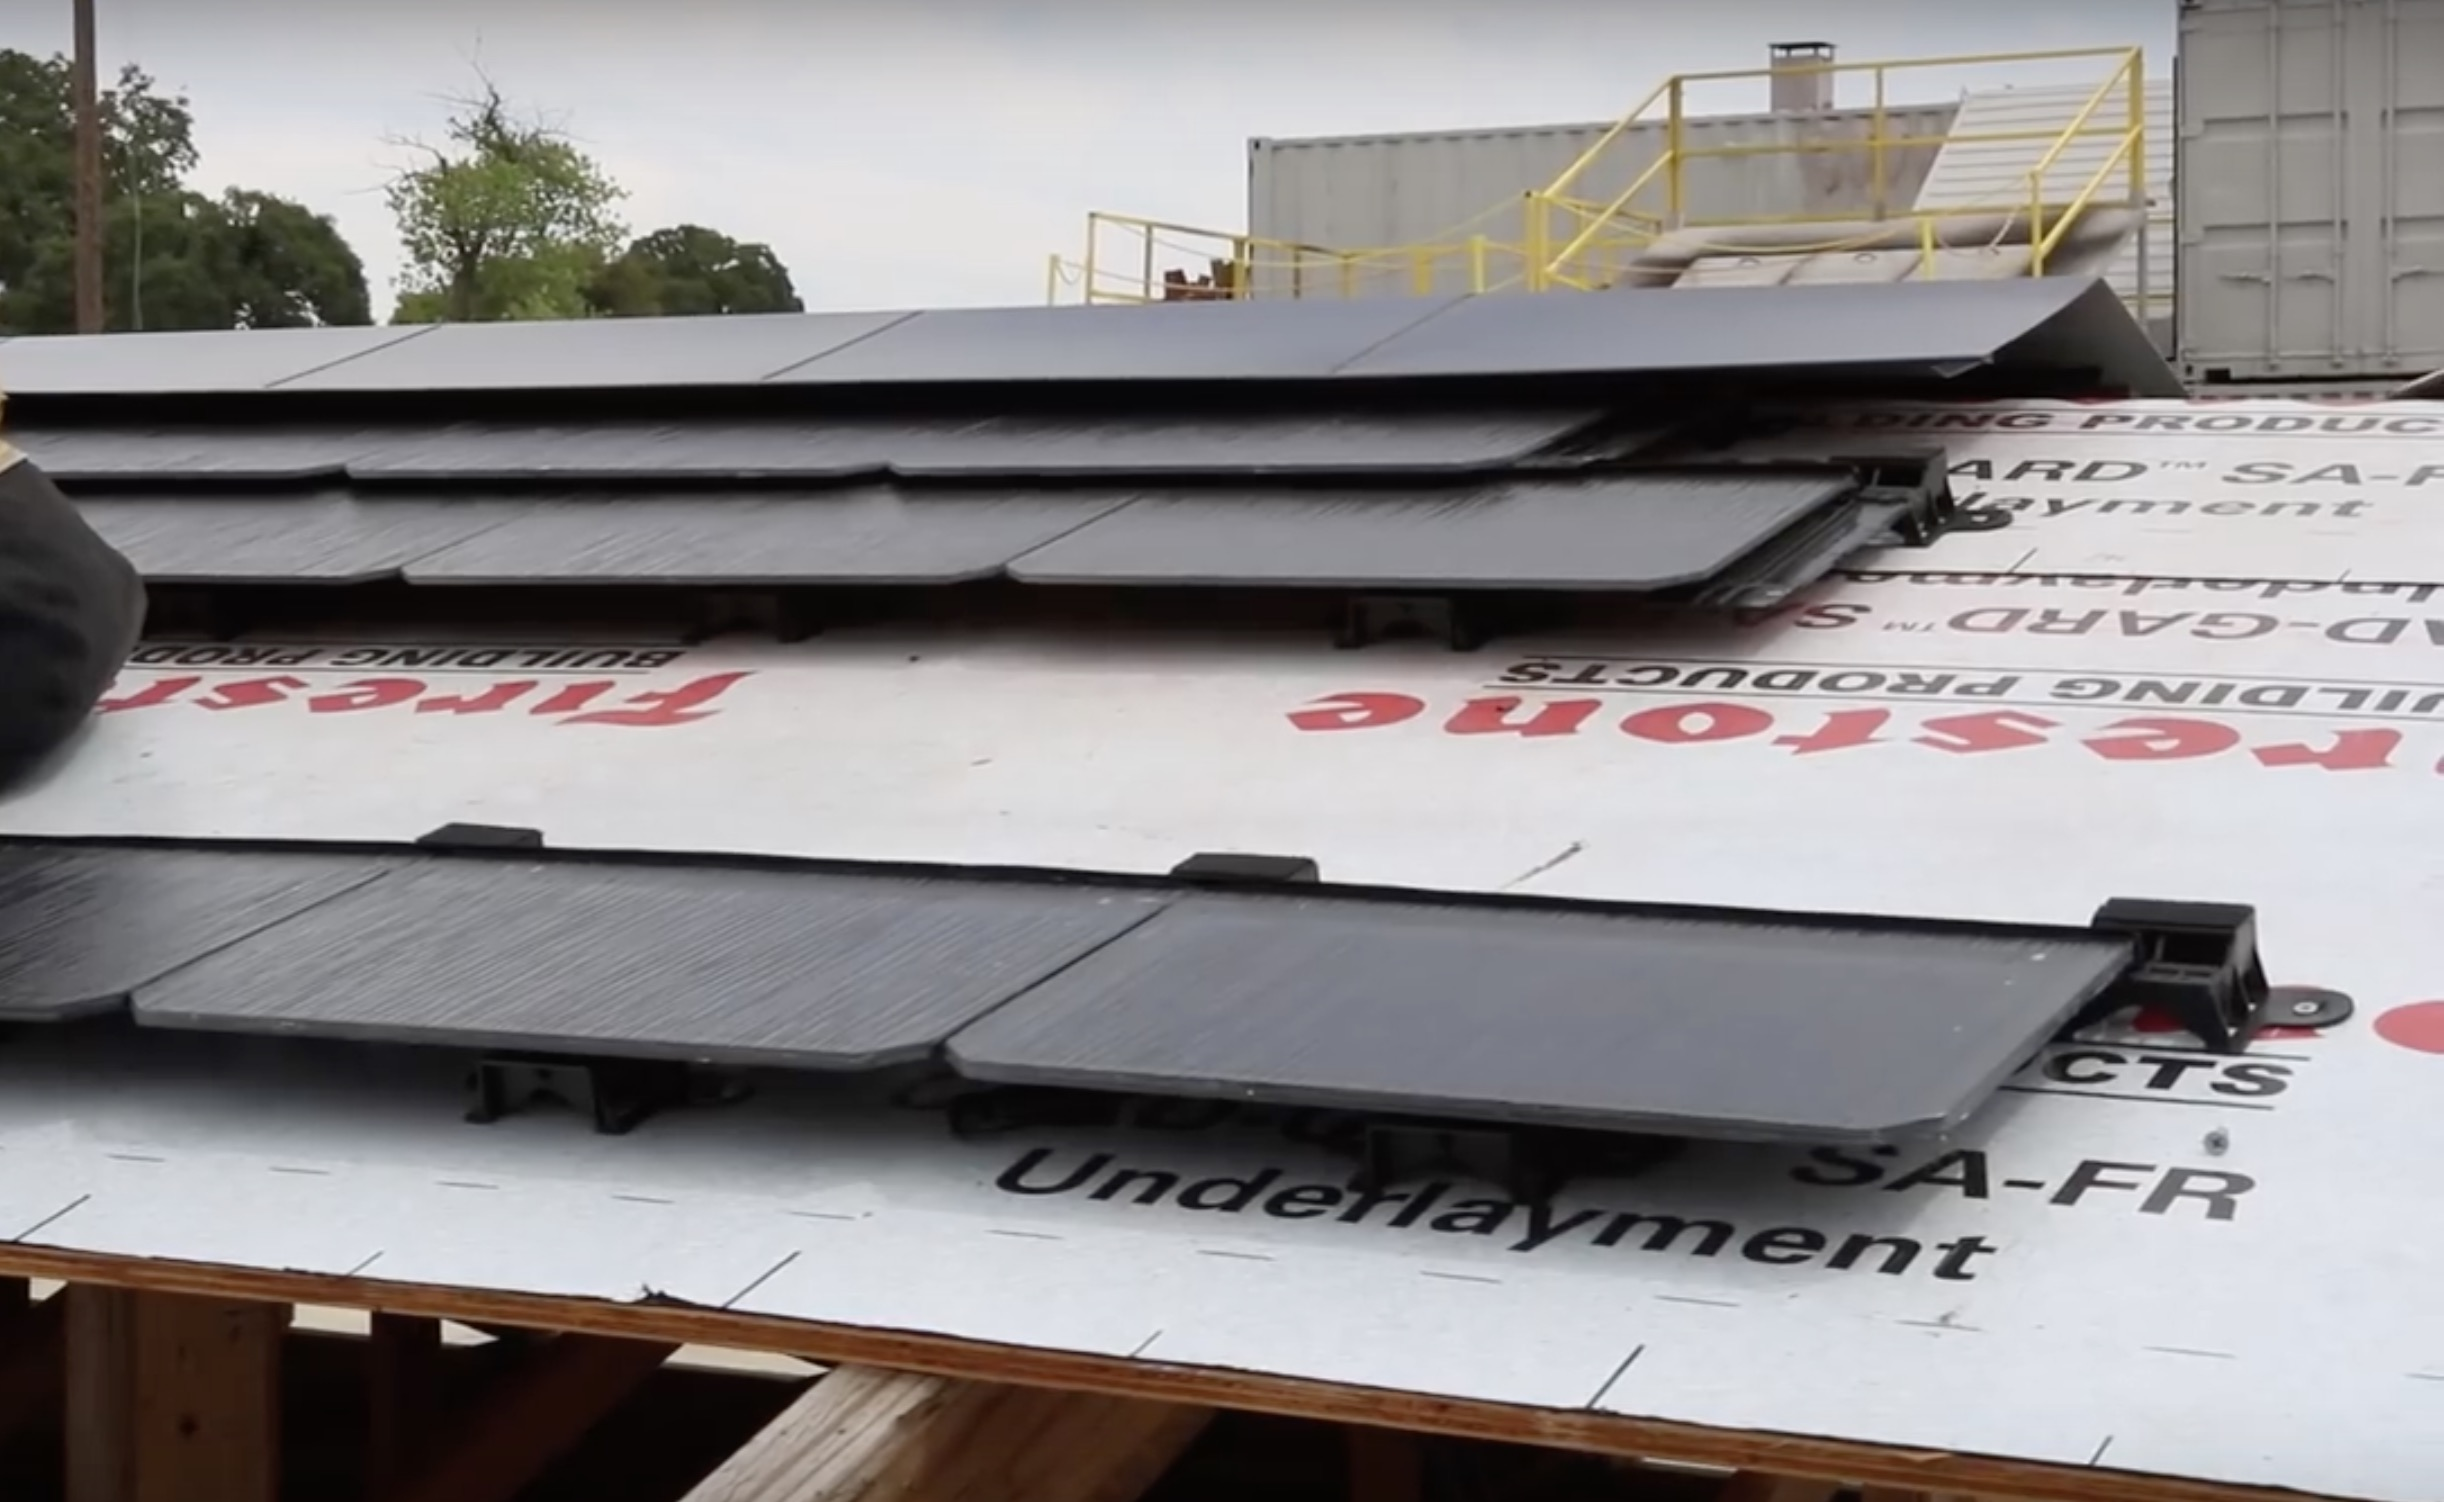 Tesla Solar Roof Order >> Watch A Tesla Solar Roof Being Dismantled In First Responder